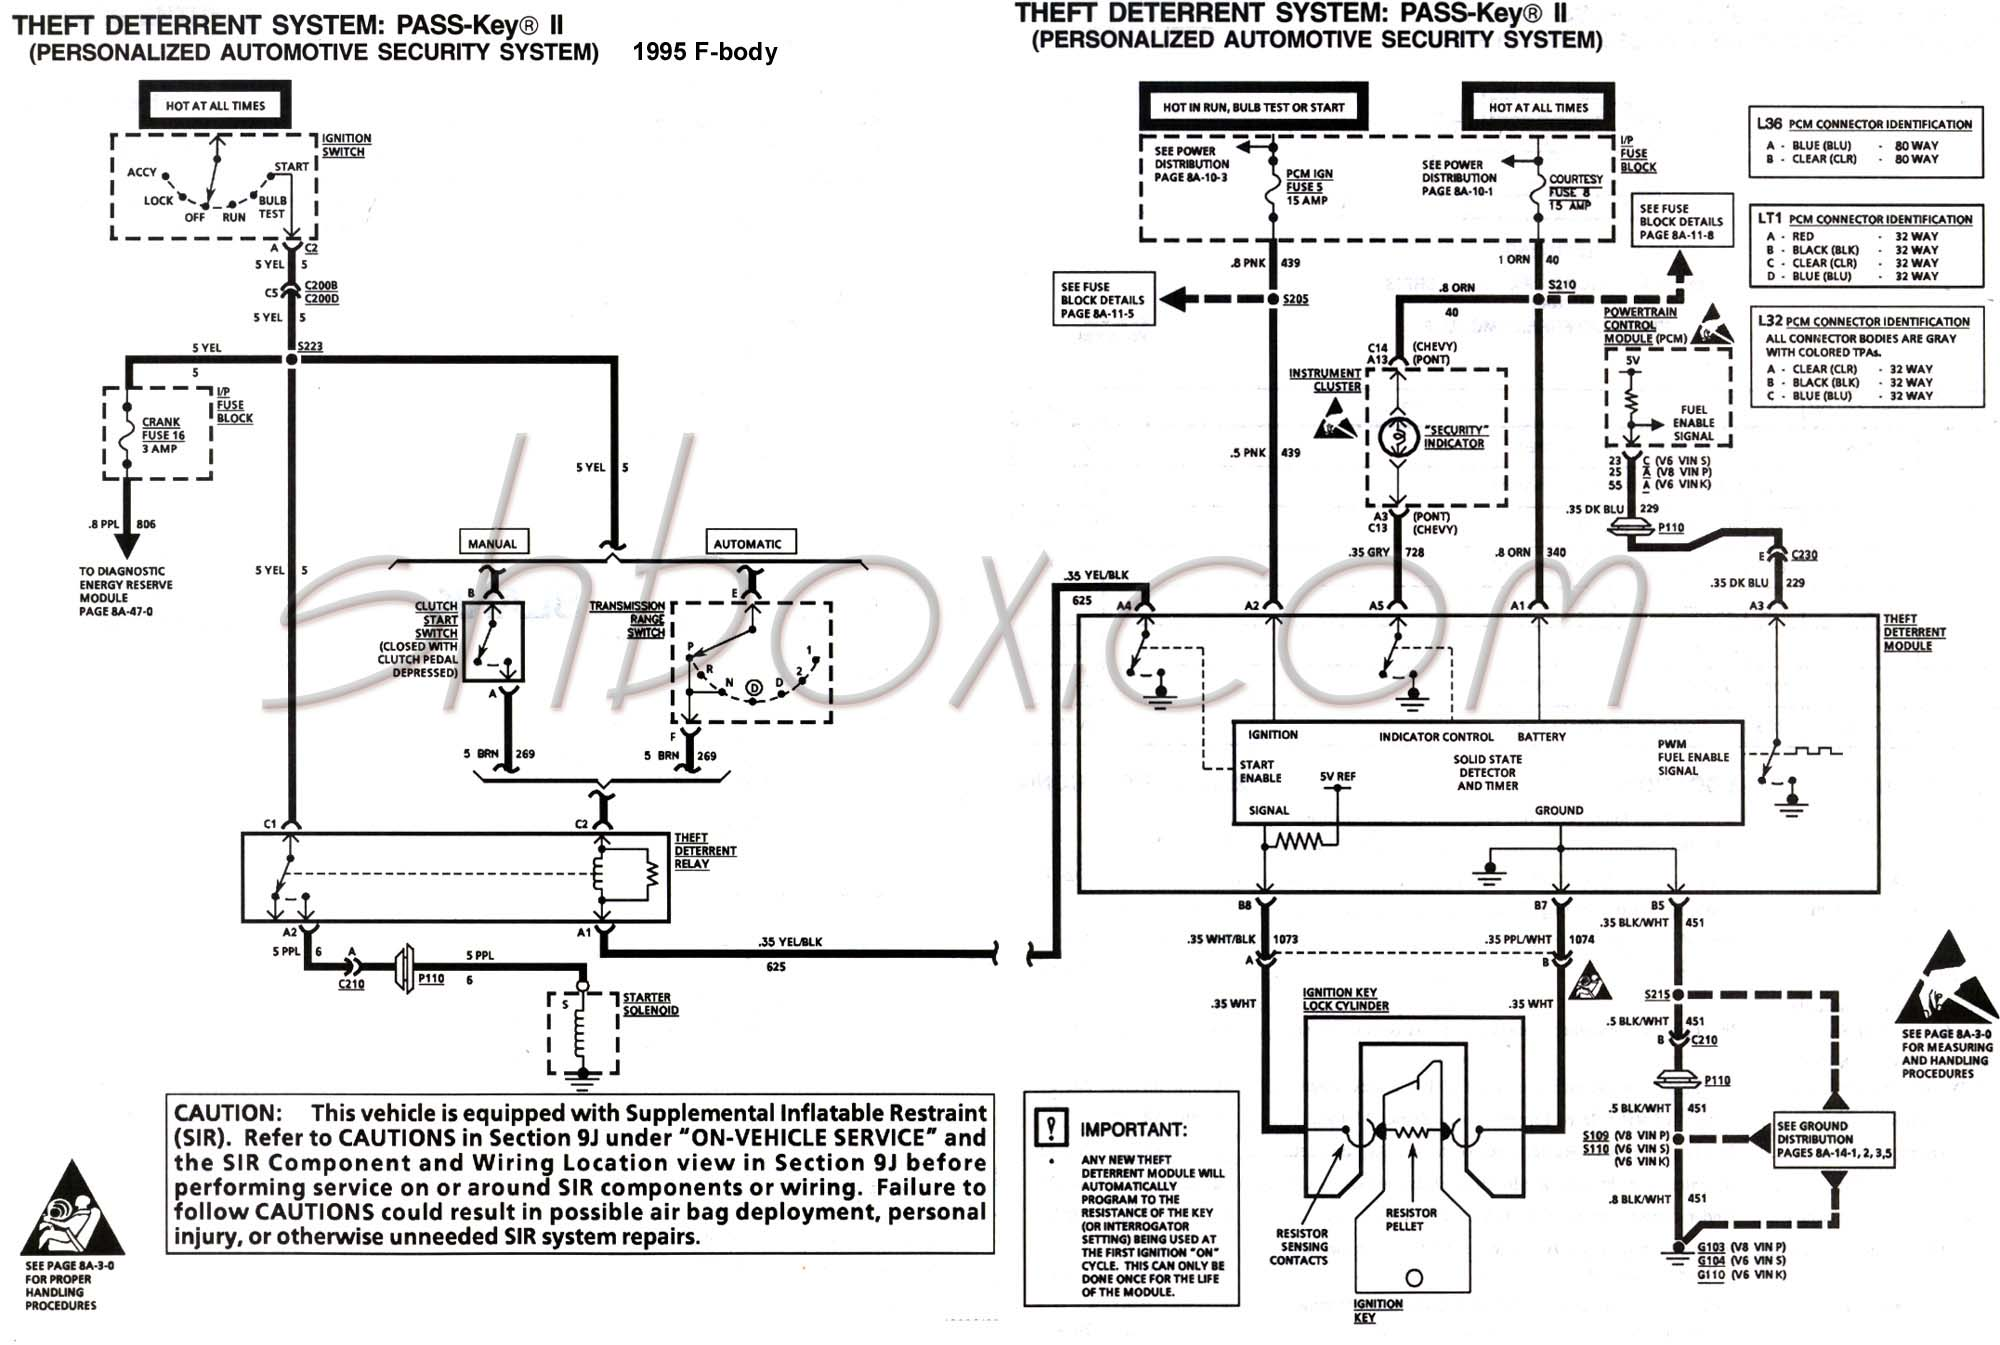 free wiring diagrams for cars renault megane window motor diagram lt1 all data 4th gen f body tech aids chevy